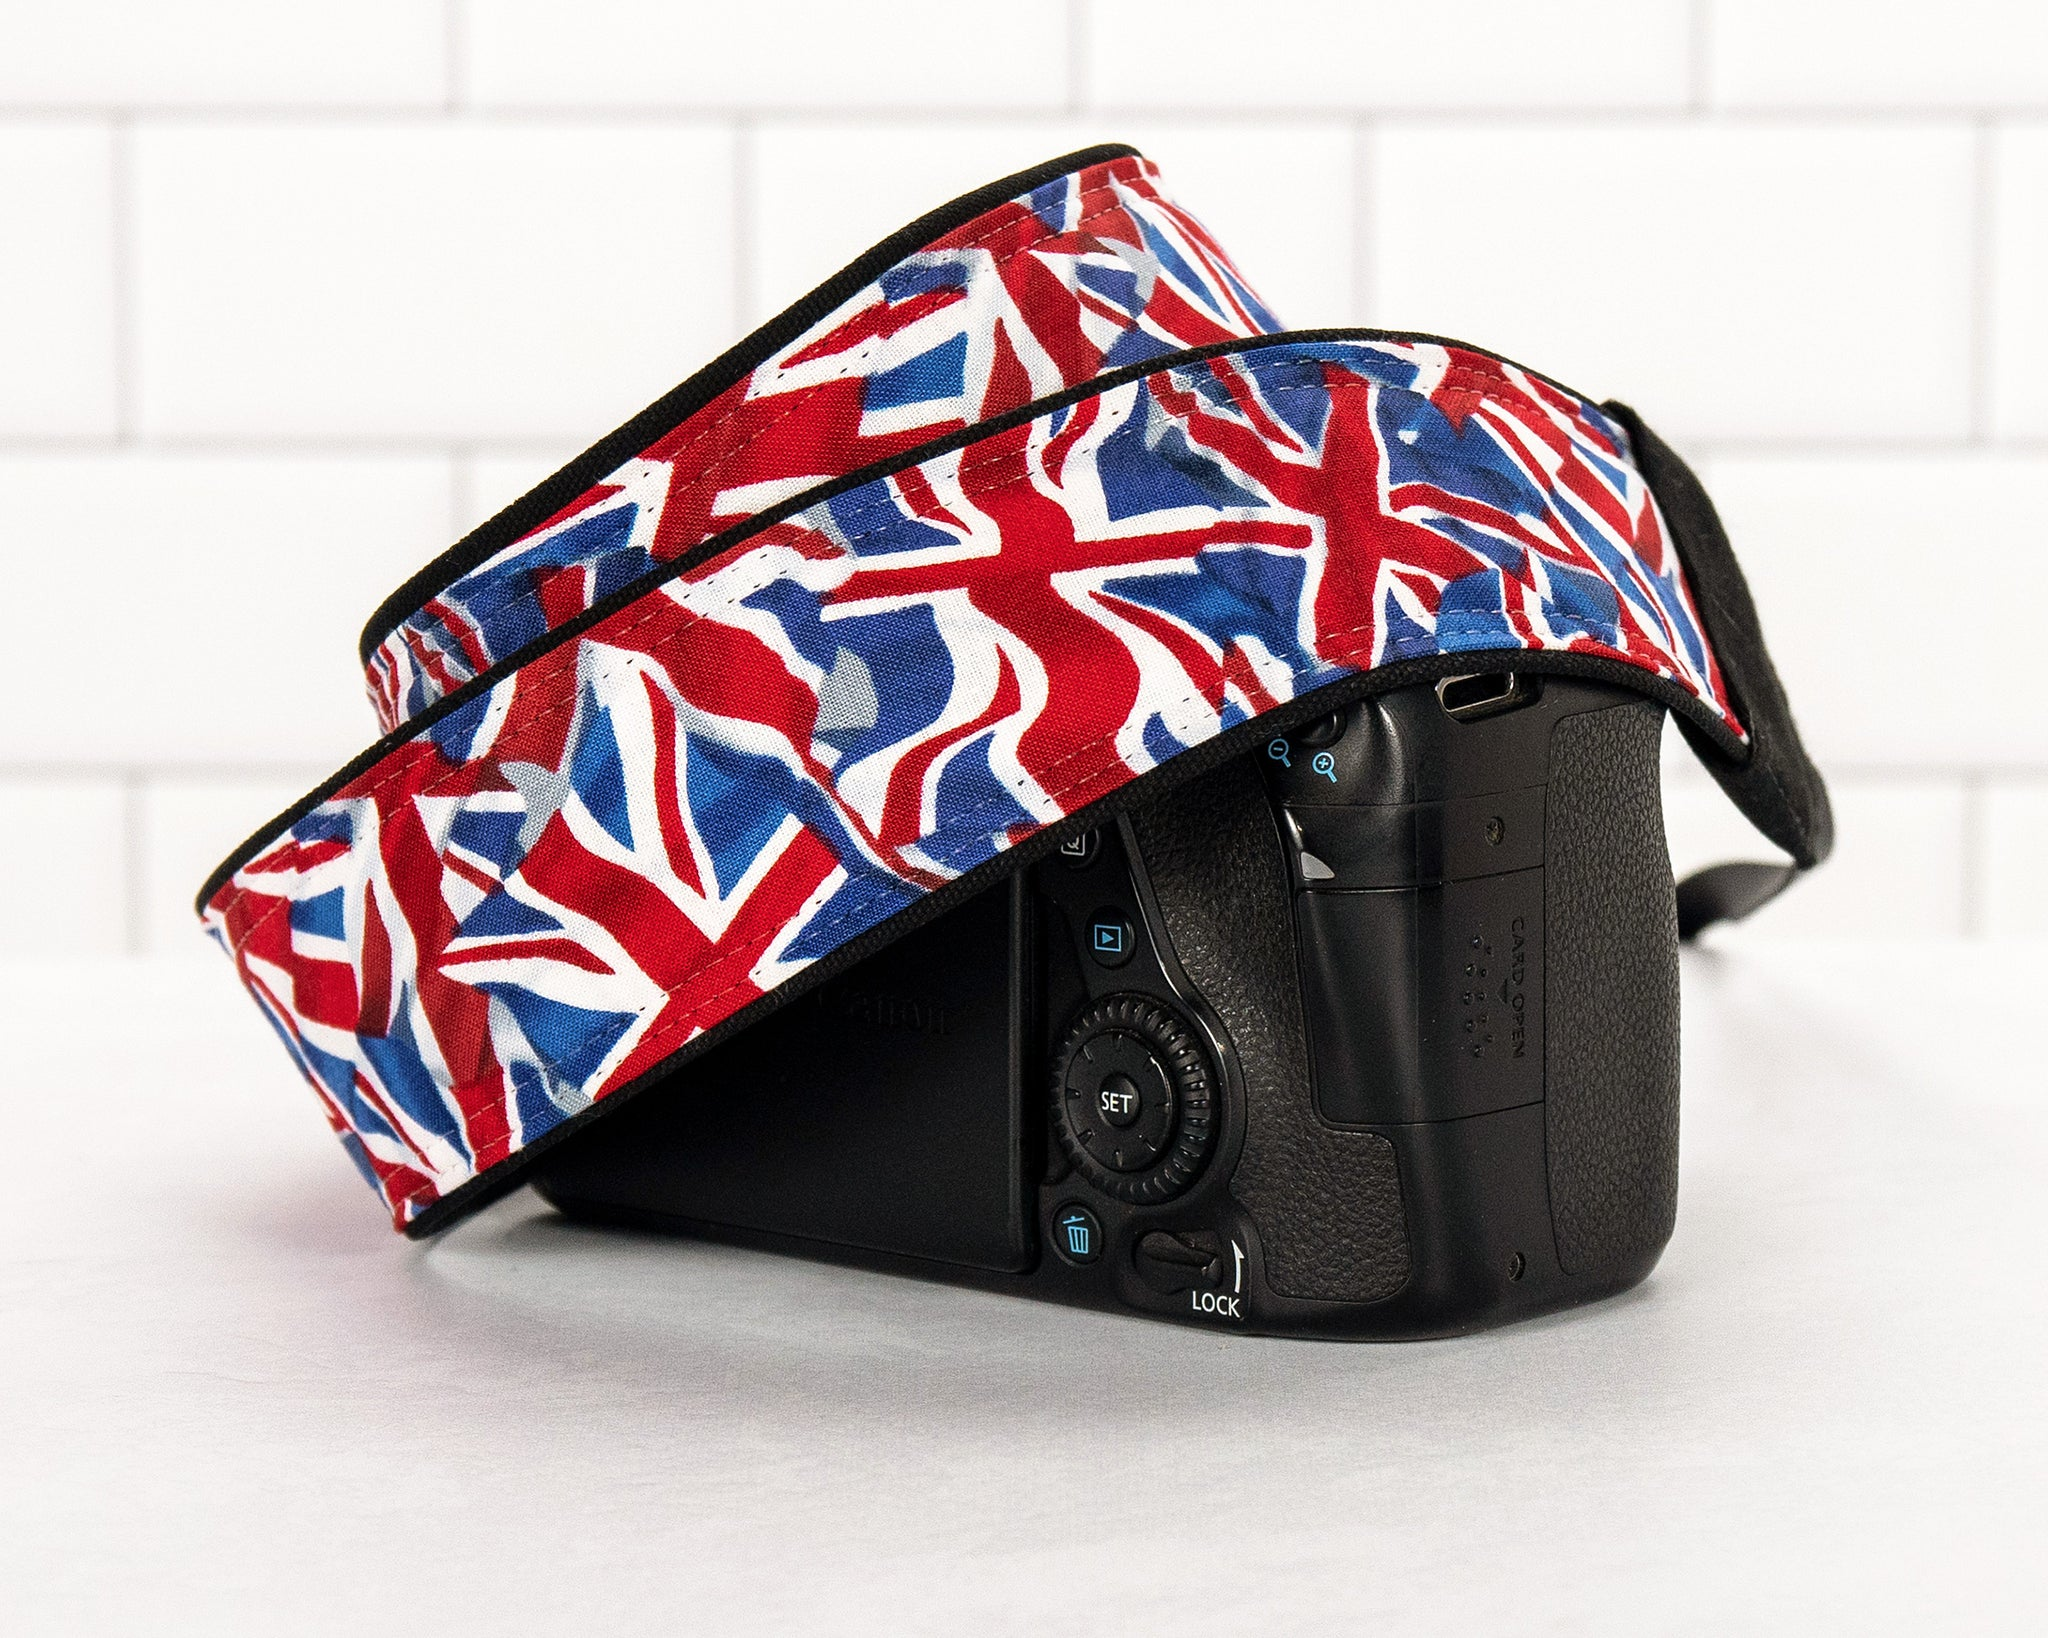 273 Union Jack Flag Camera Strap - ten8e Camera Straps